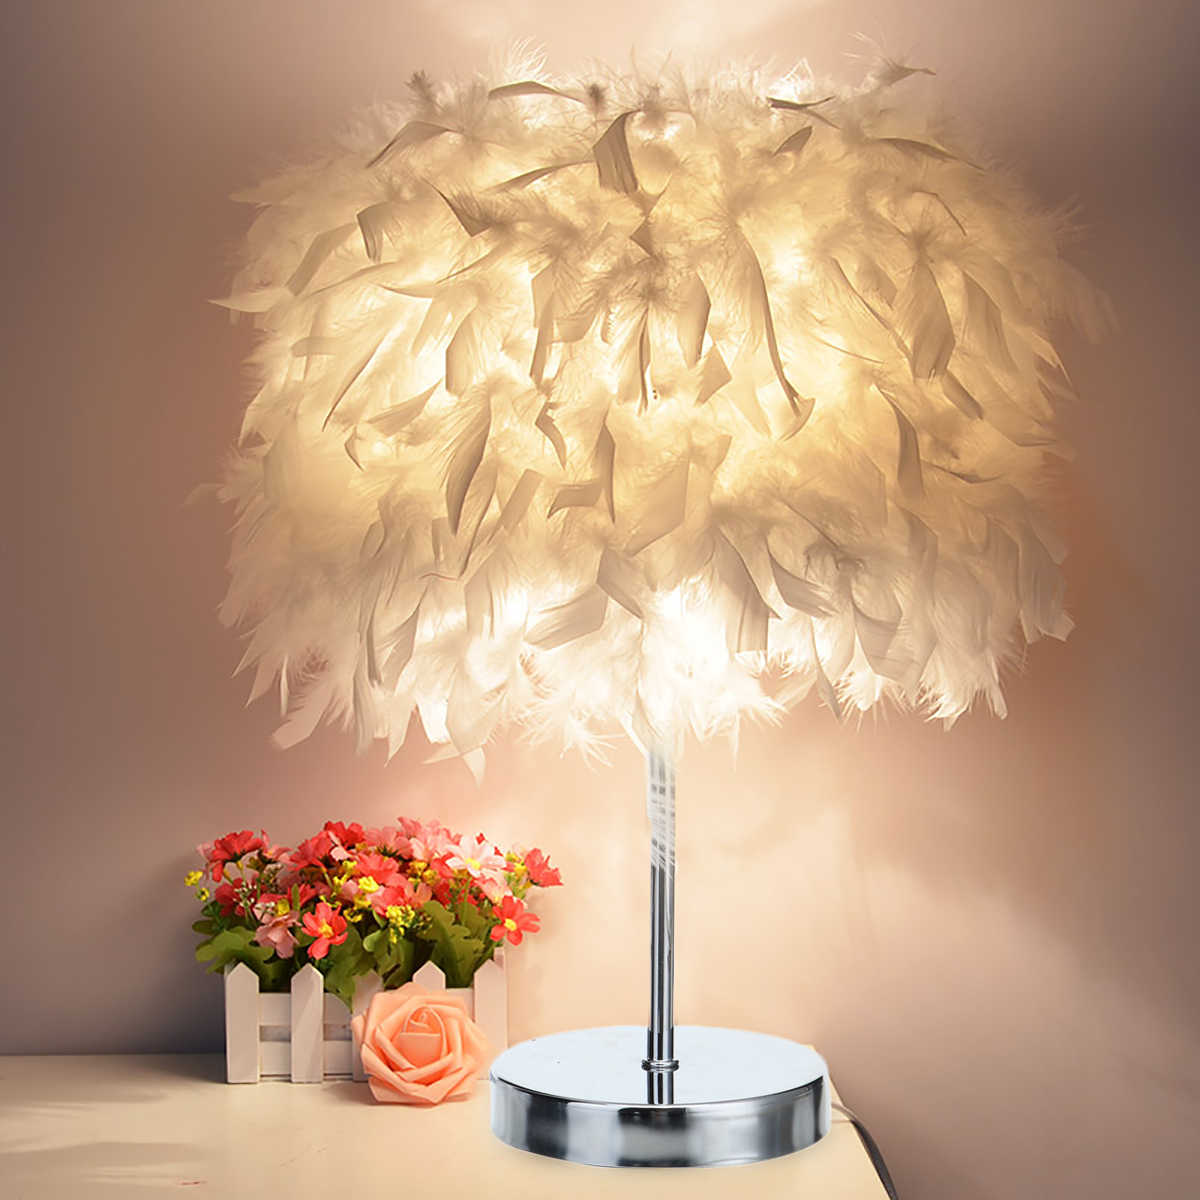 220V Christmas Decor Night Light Soft Vintage Feather Shade Metal Table Lamp Bedside Desk Vintage Bedroom Study Room White